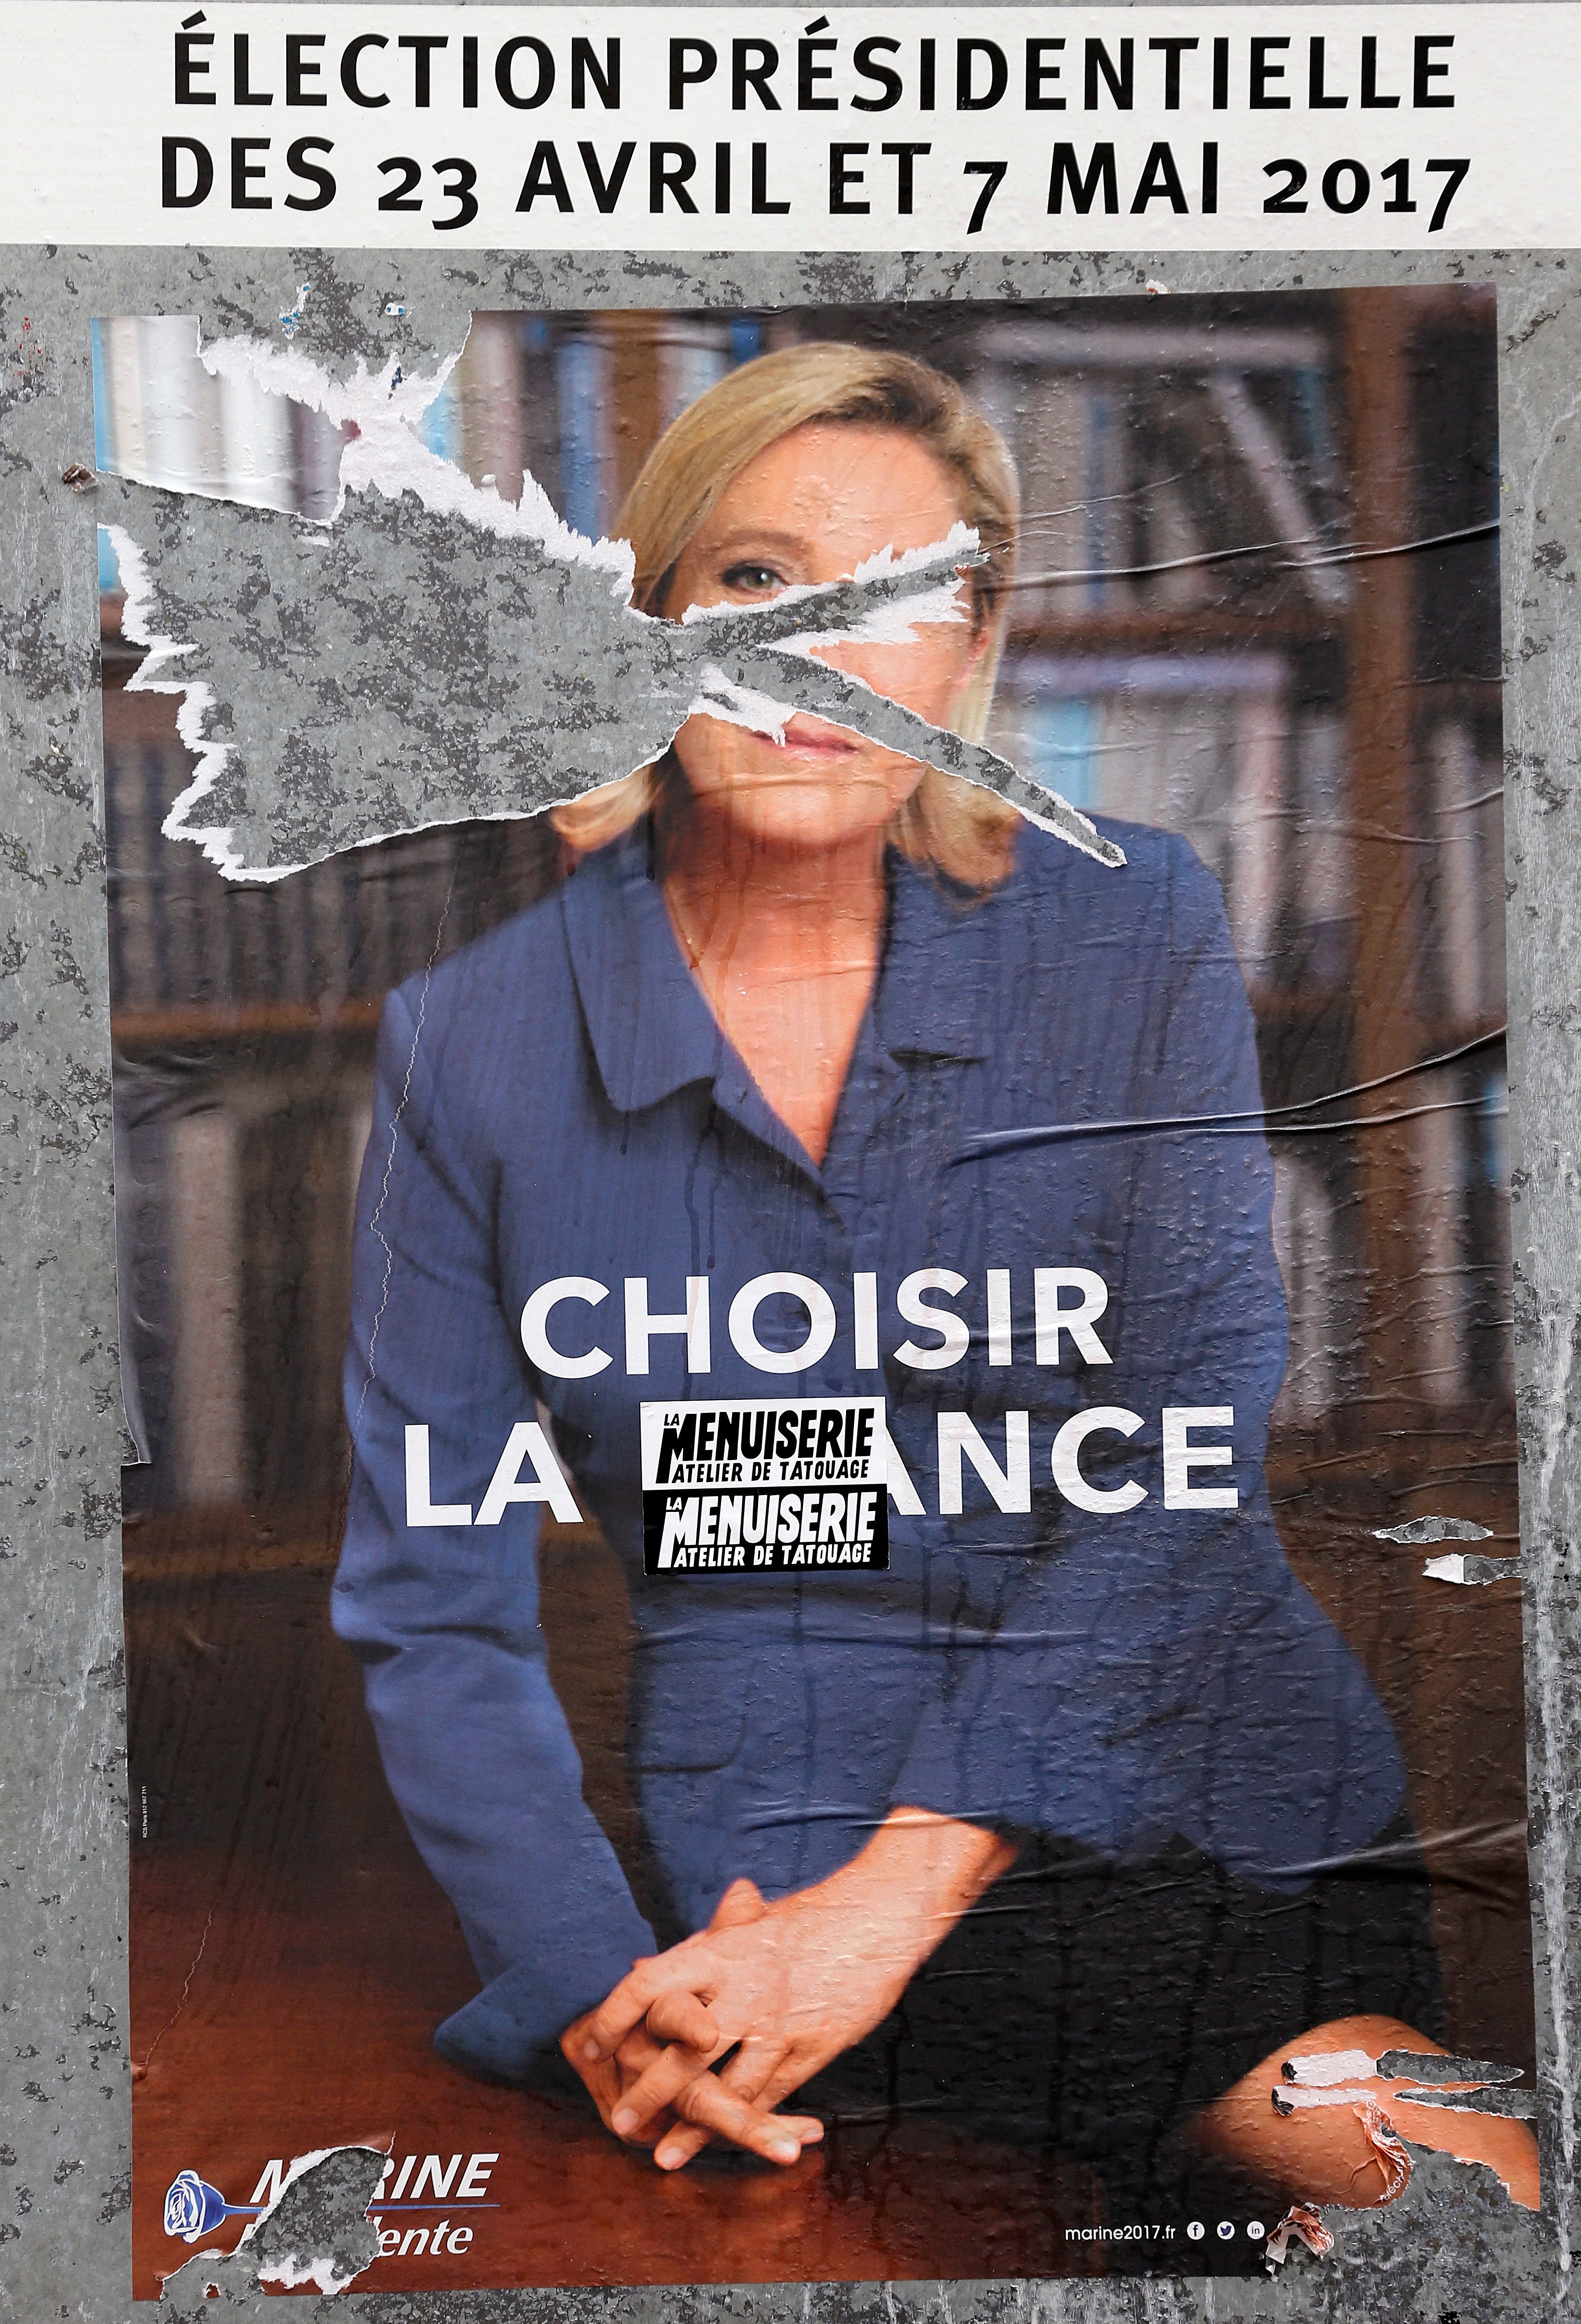 PARIS, FRANCE - MAY 04:  A damaged official campaign poster of Marine Le Pen, French National Front (FN) political party leader is displayed on May 04, 2017 in Paris, France. Le Pen and Macron arrived in the lead positions in the first round of the presidential elections. France will hold the second round on May 07, 2017.  (Photo by Chesnot/Getty Images)